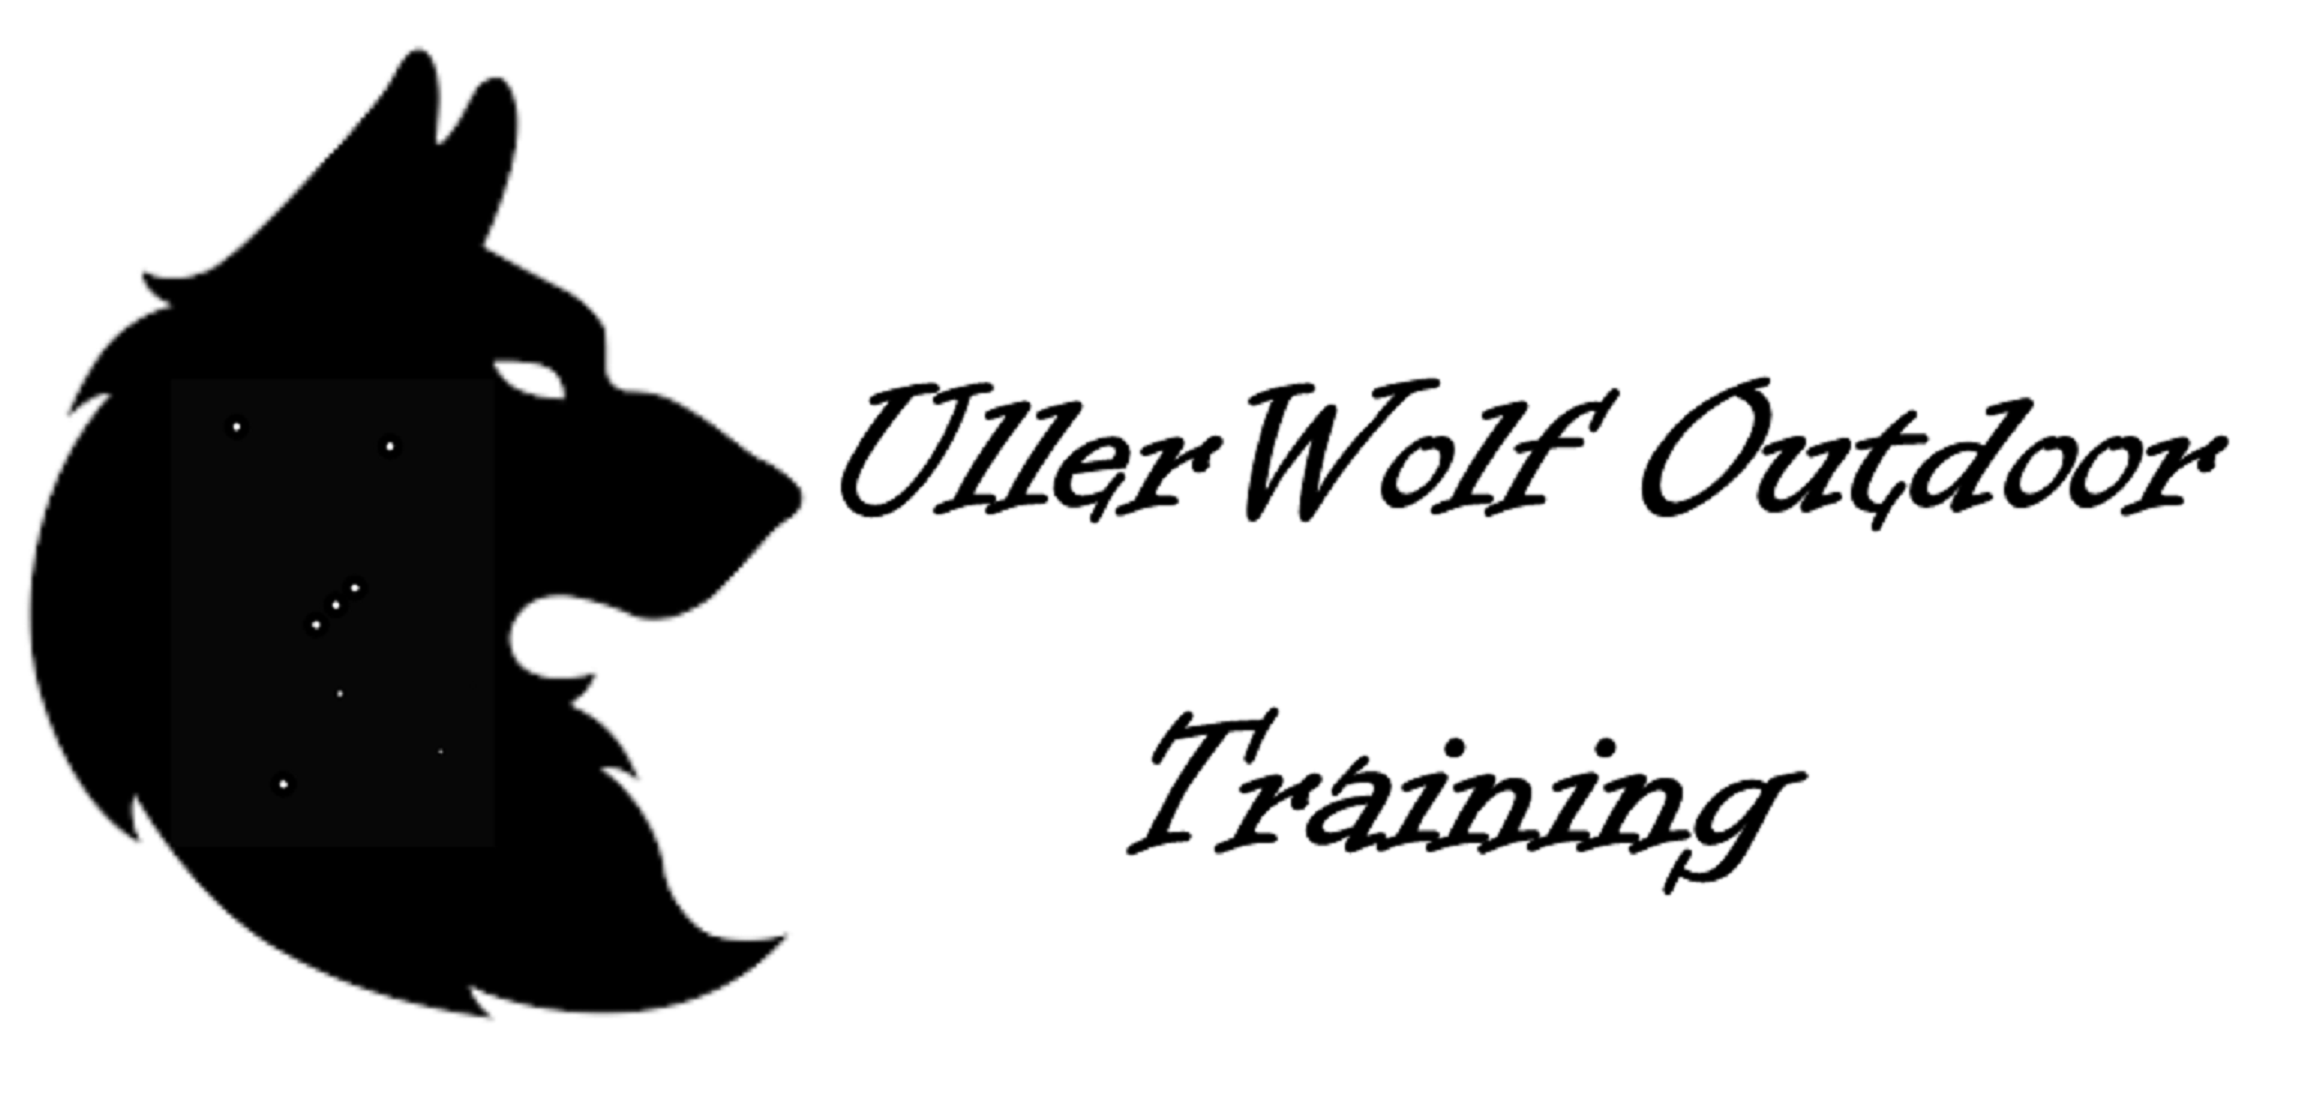 Ullerwolf Outdoor Training